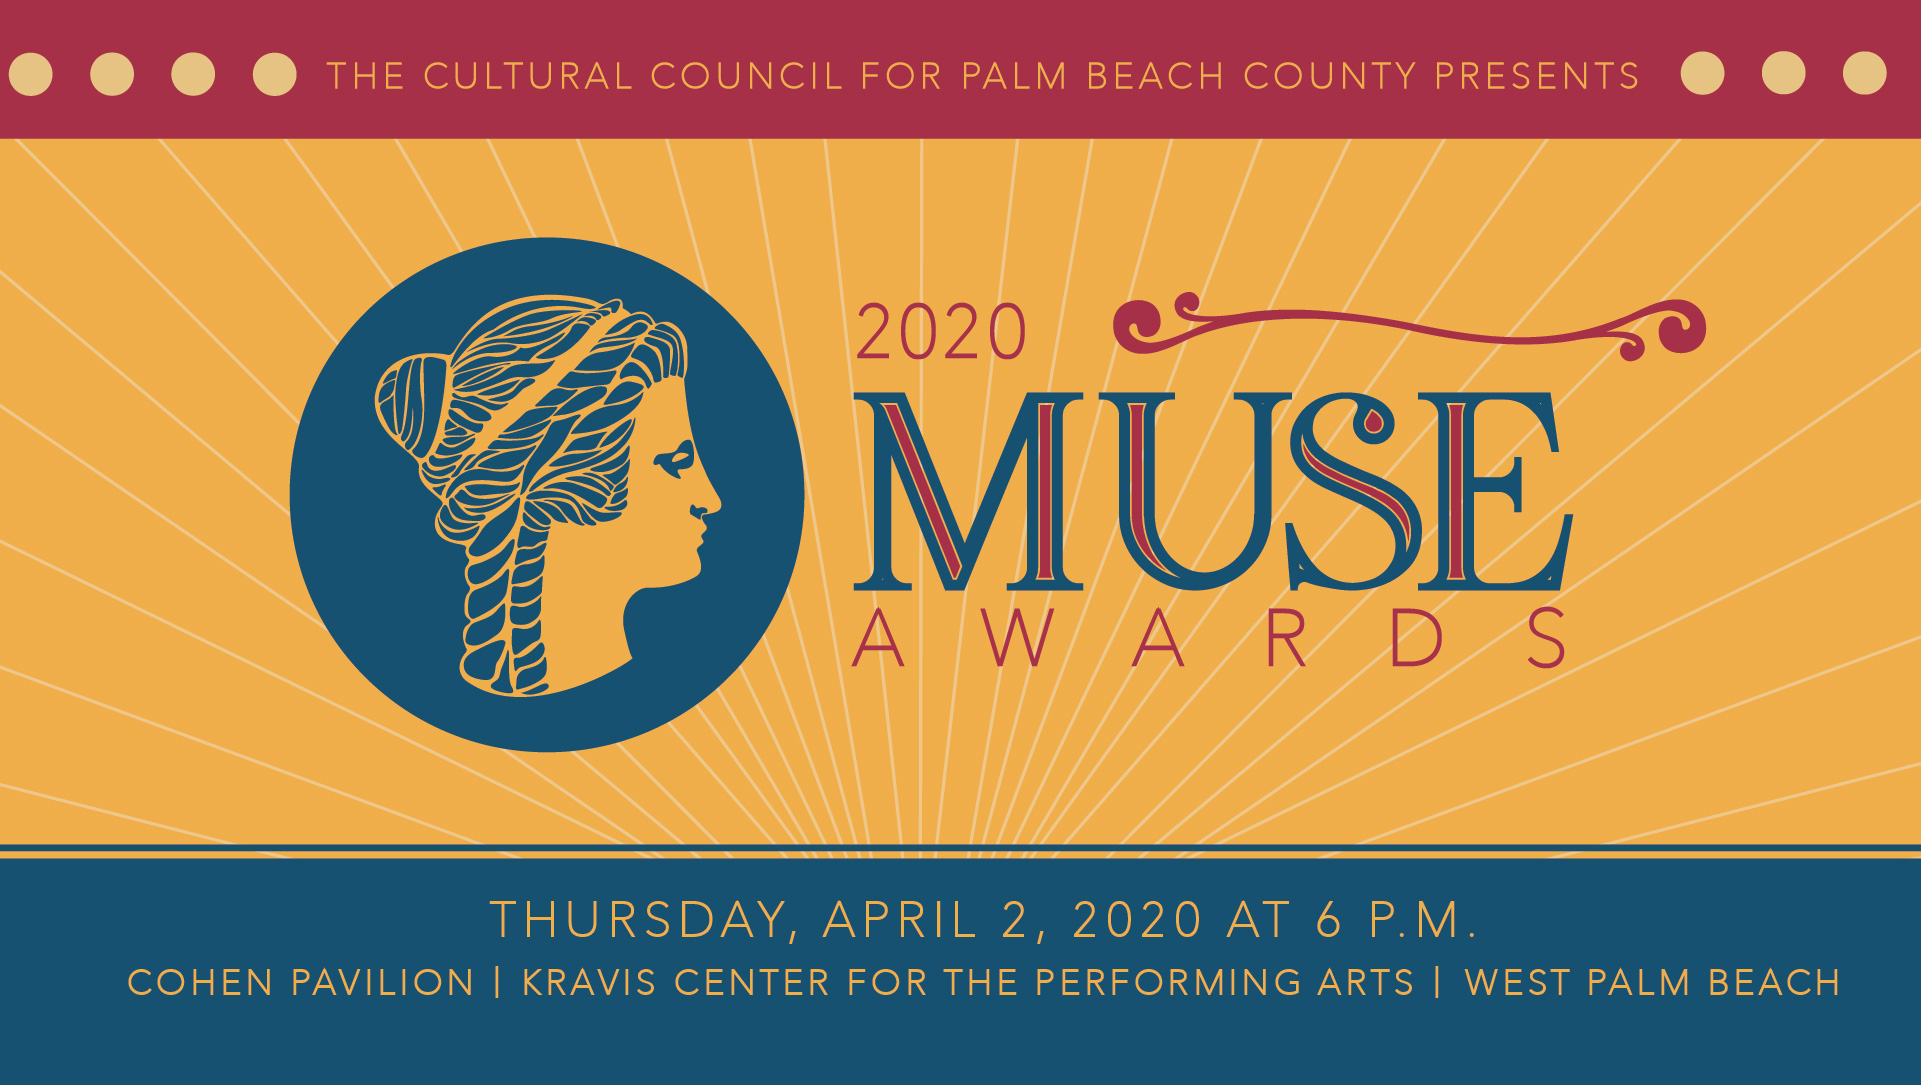 2020 Muse Awards